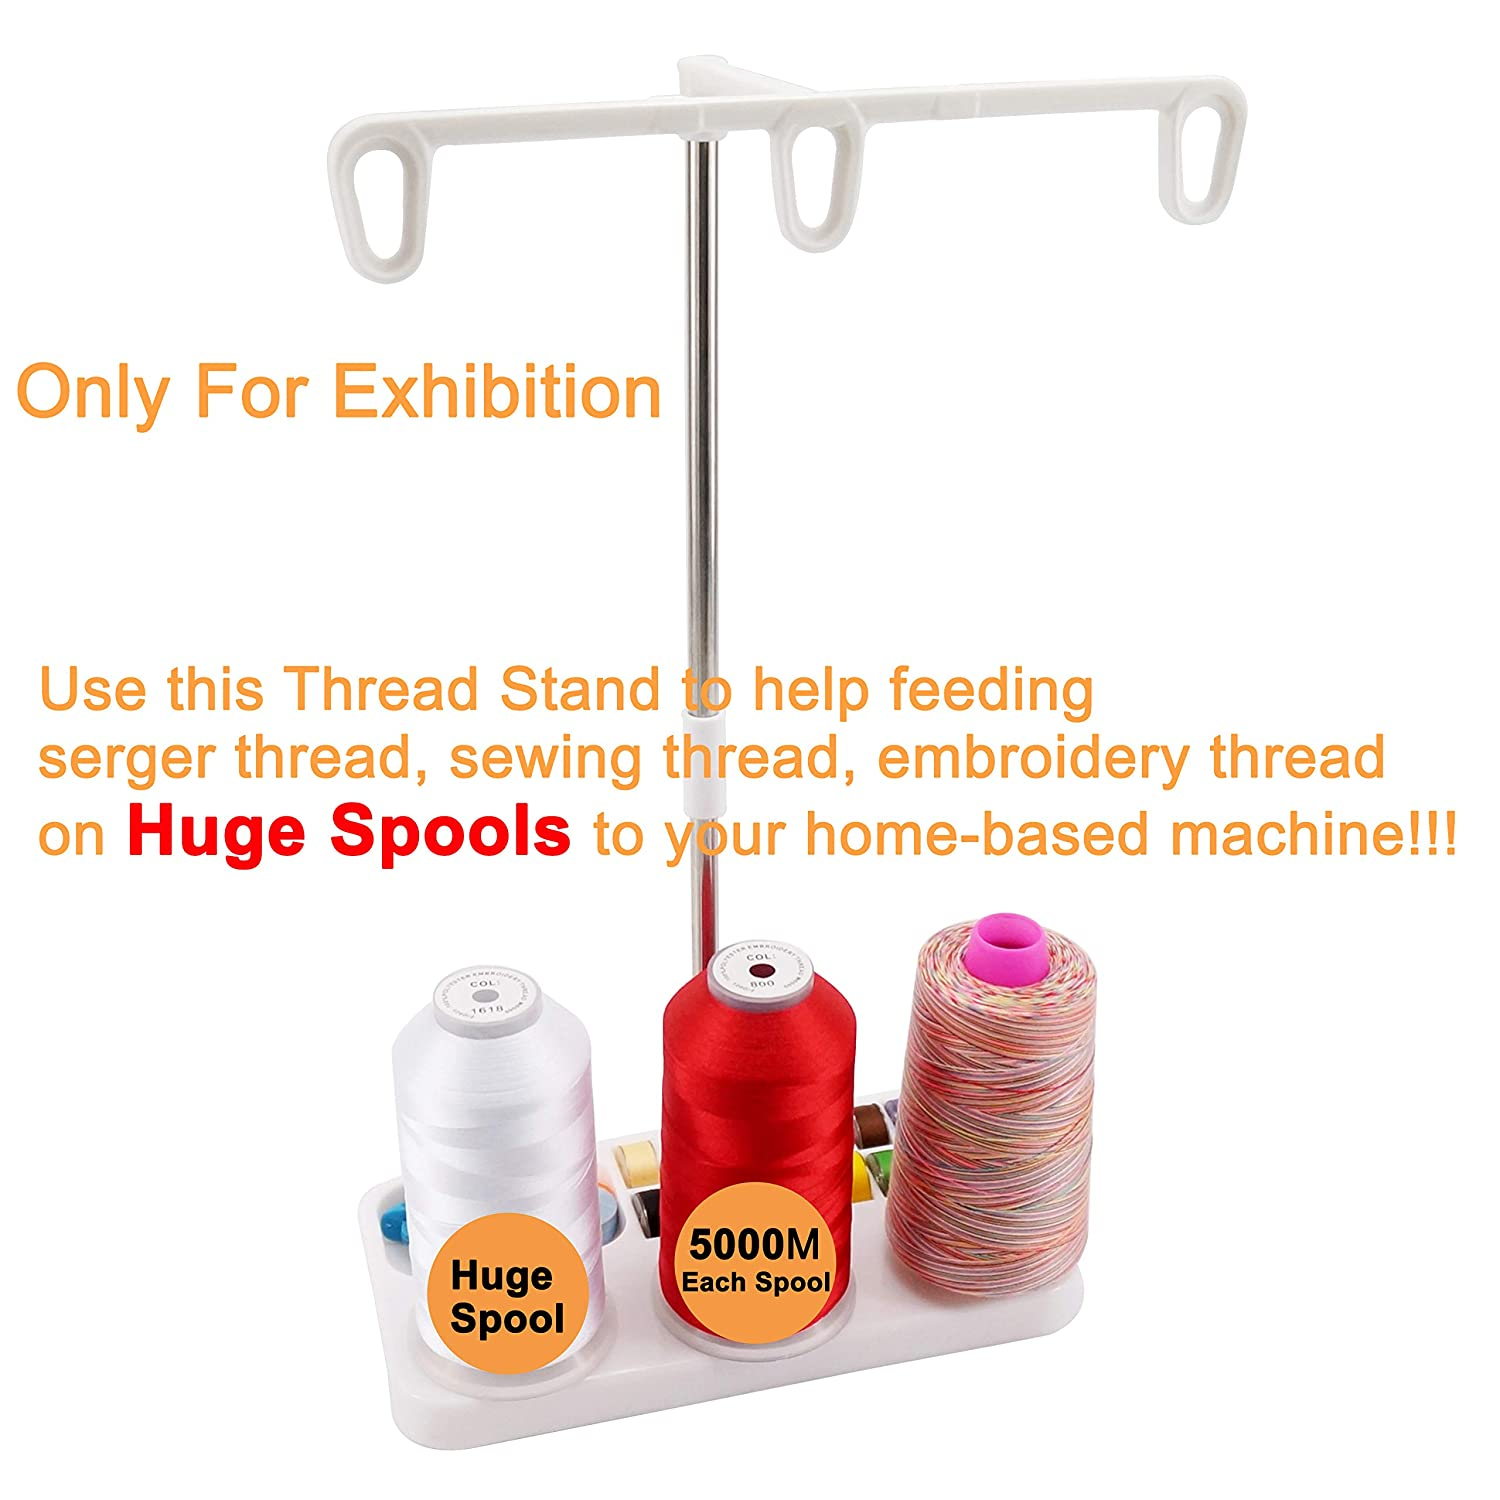 CKPSMS Brand #KP-19004 New Thread Stand-3 Spools Holder for Embroidery,Sewing,Quilting and Serger Machines